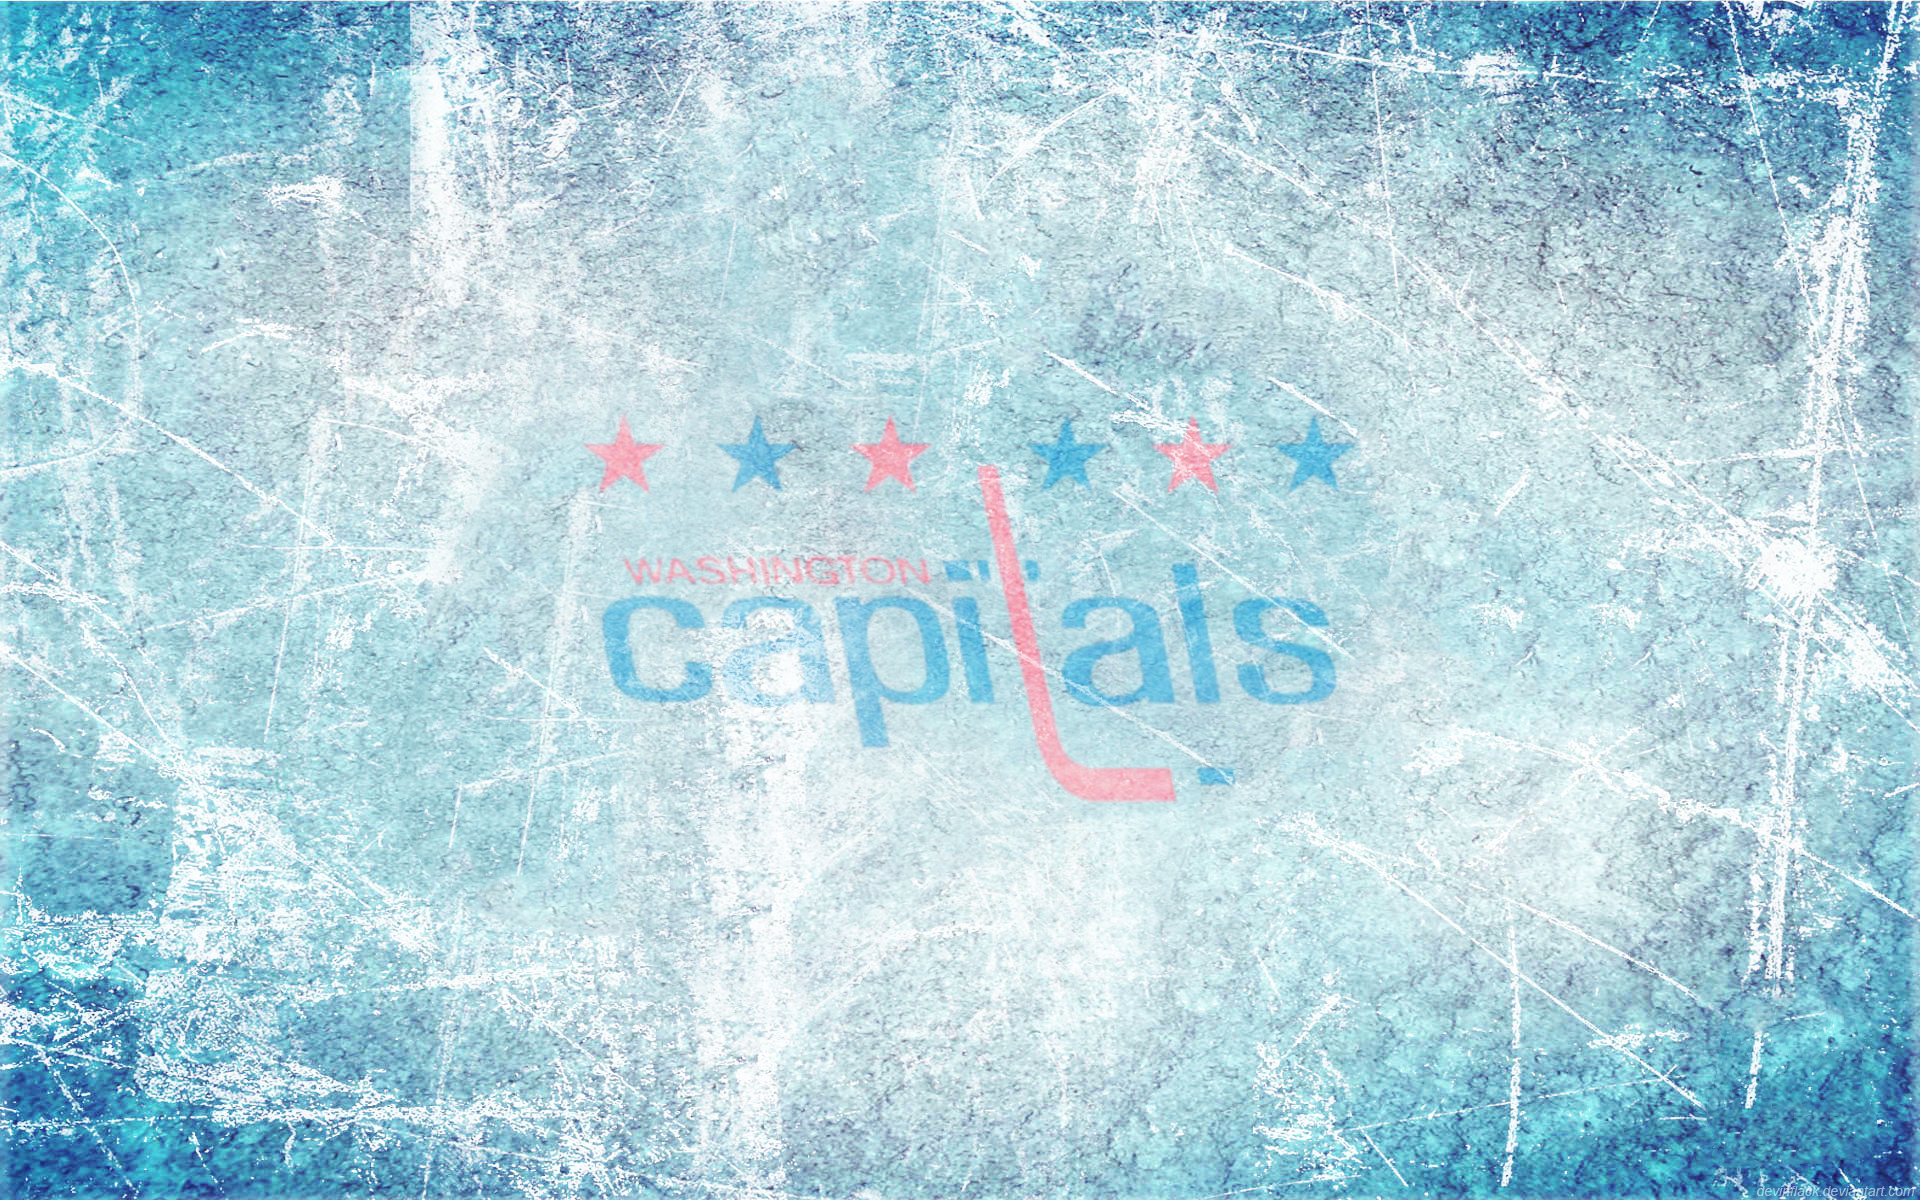 wallpaper by devinflack fan art wallpaper other washington capitals 1920x1200